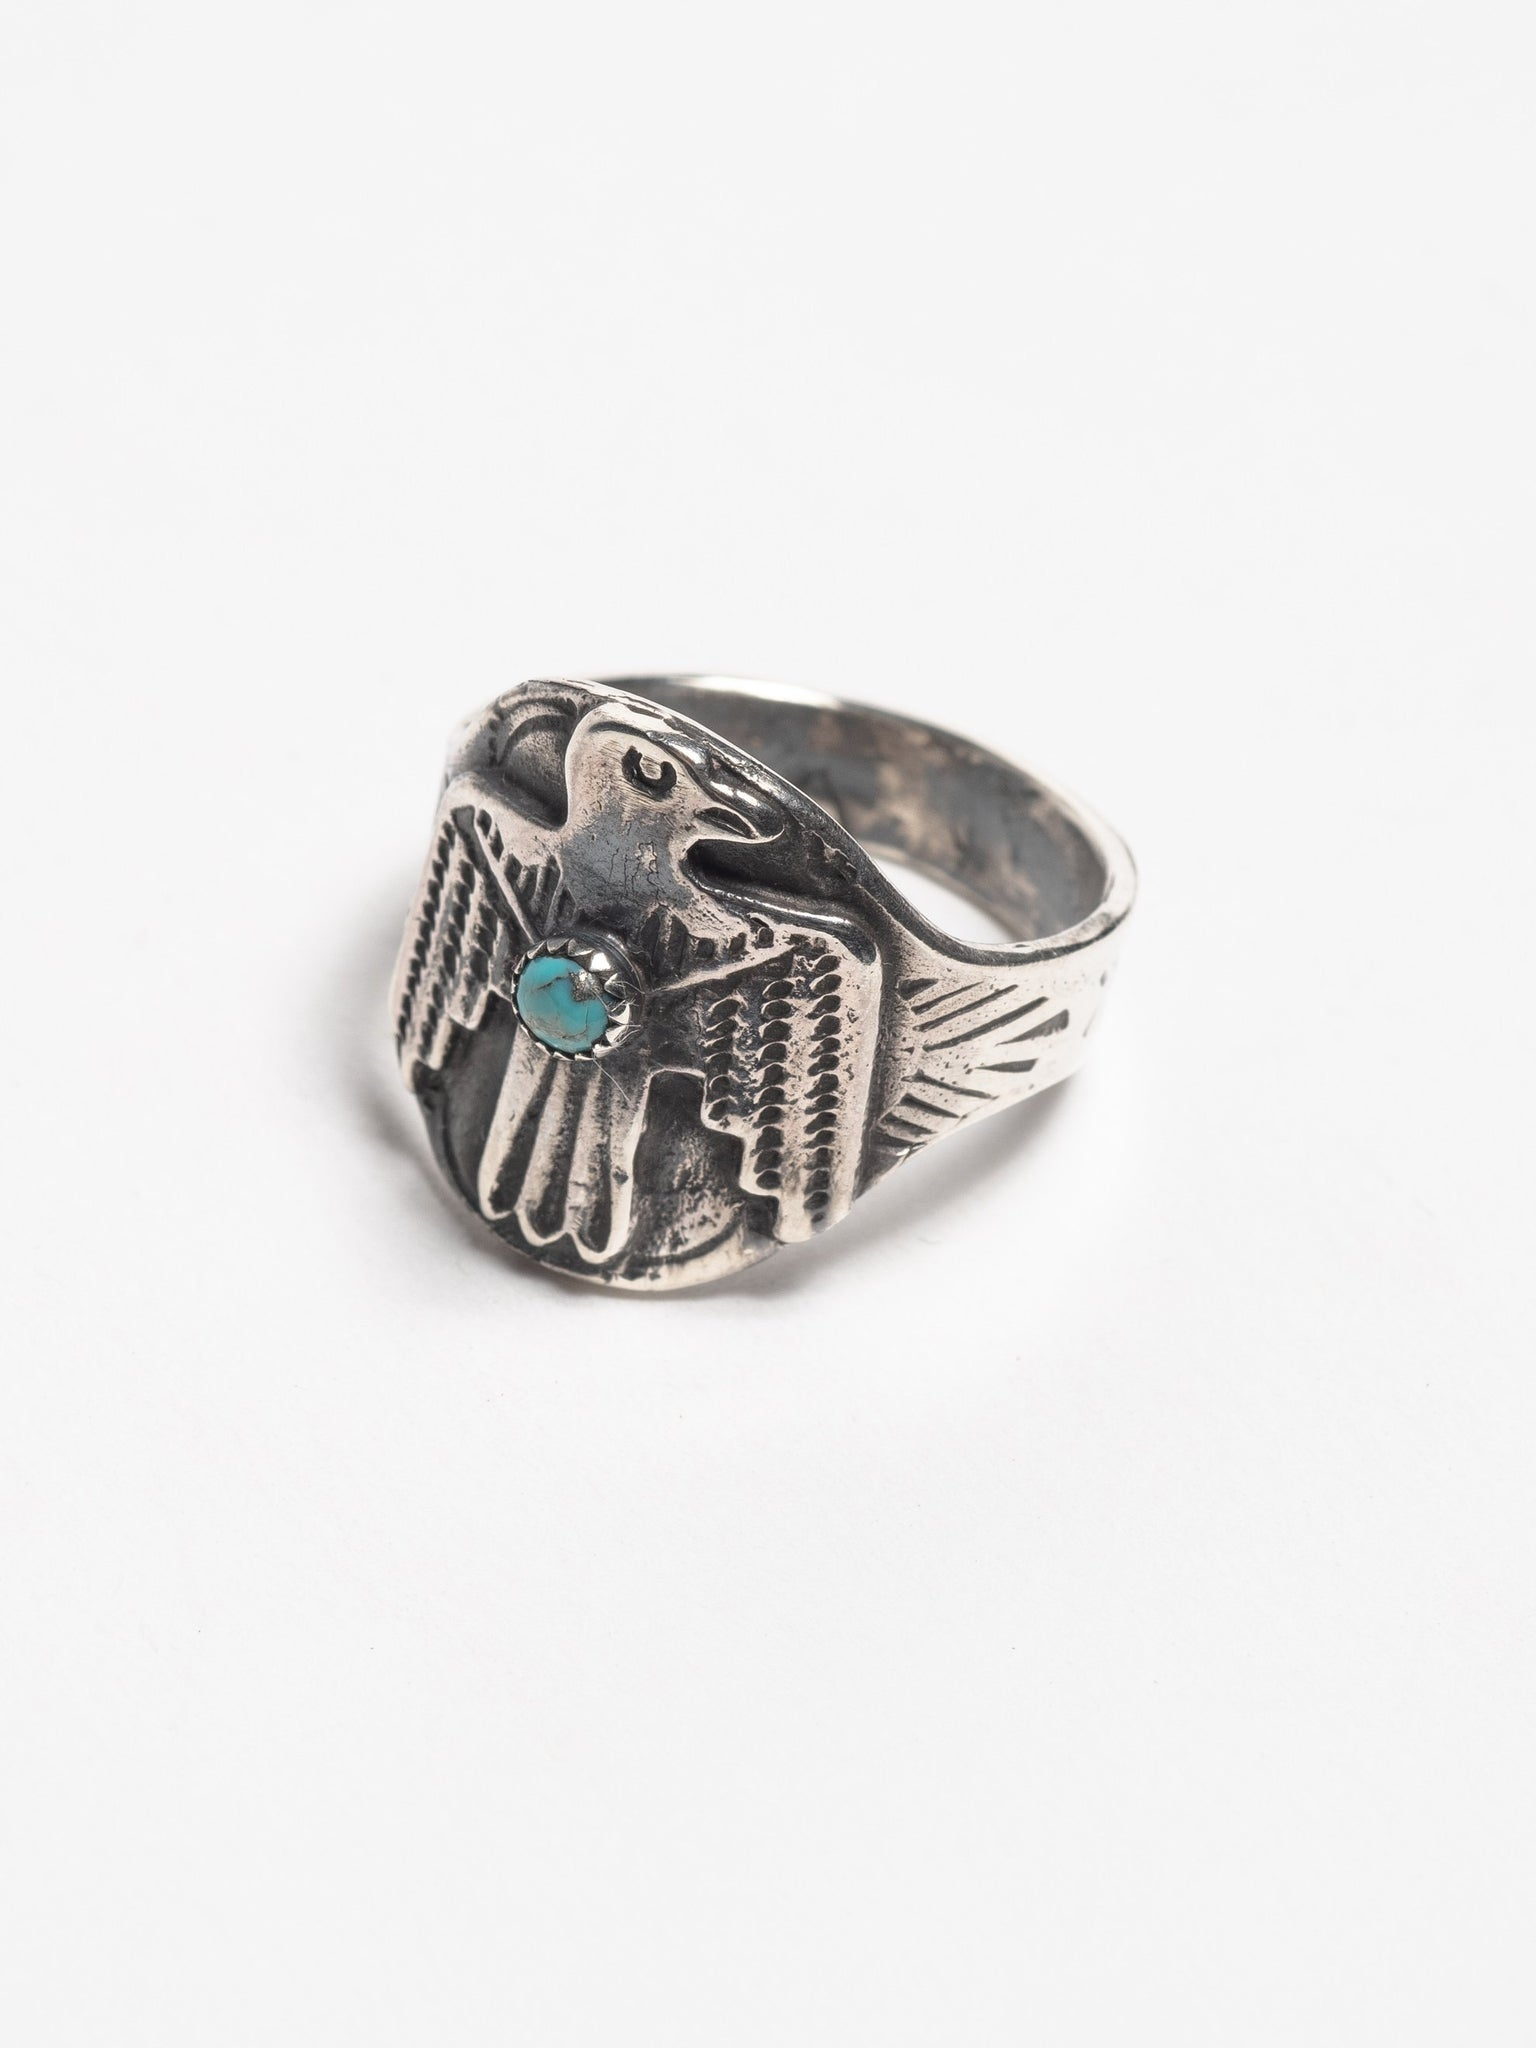 vintage-sterling-silver-navajo-thunderbird-ring-with-stamped-arrow-design